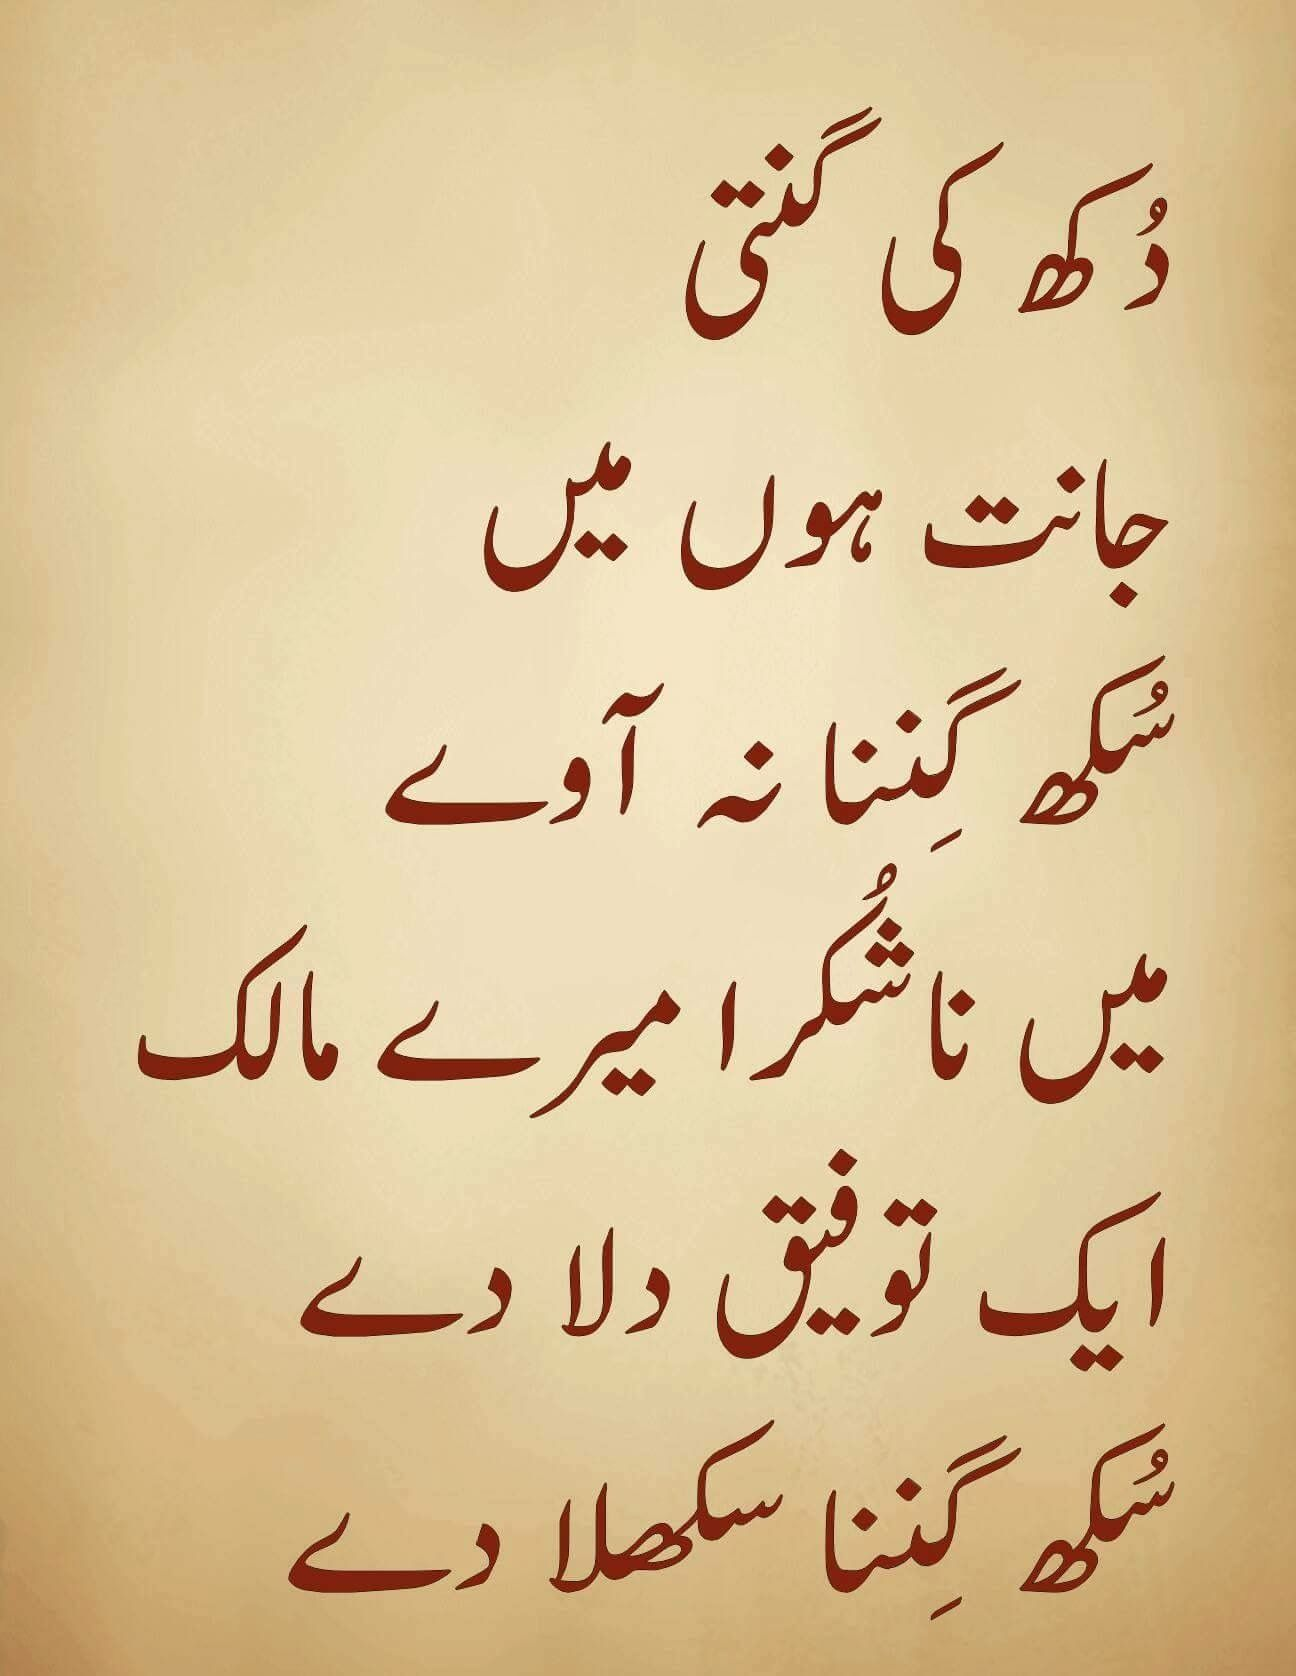 Pin by Tahirawasti Wasti on Allah | Urdu quotes, Urdu poetry